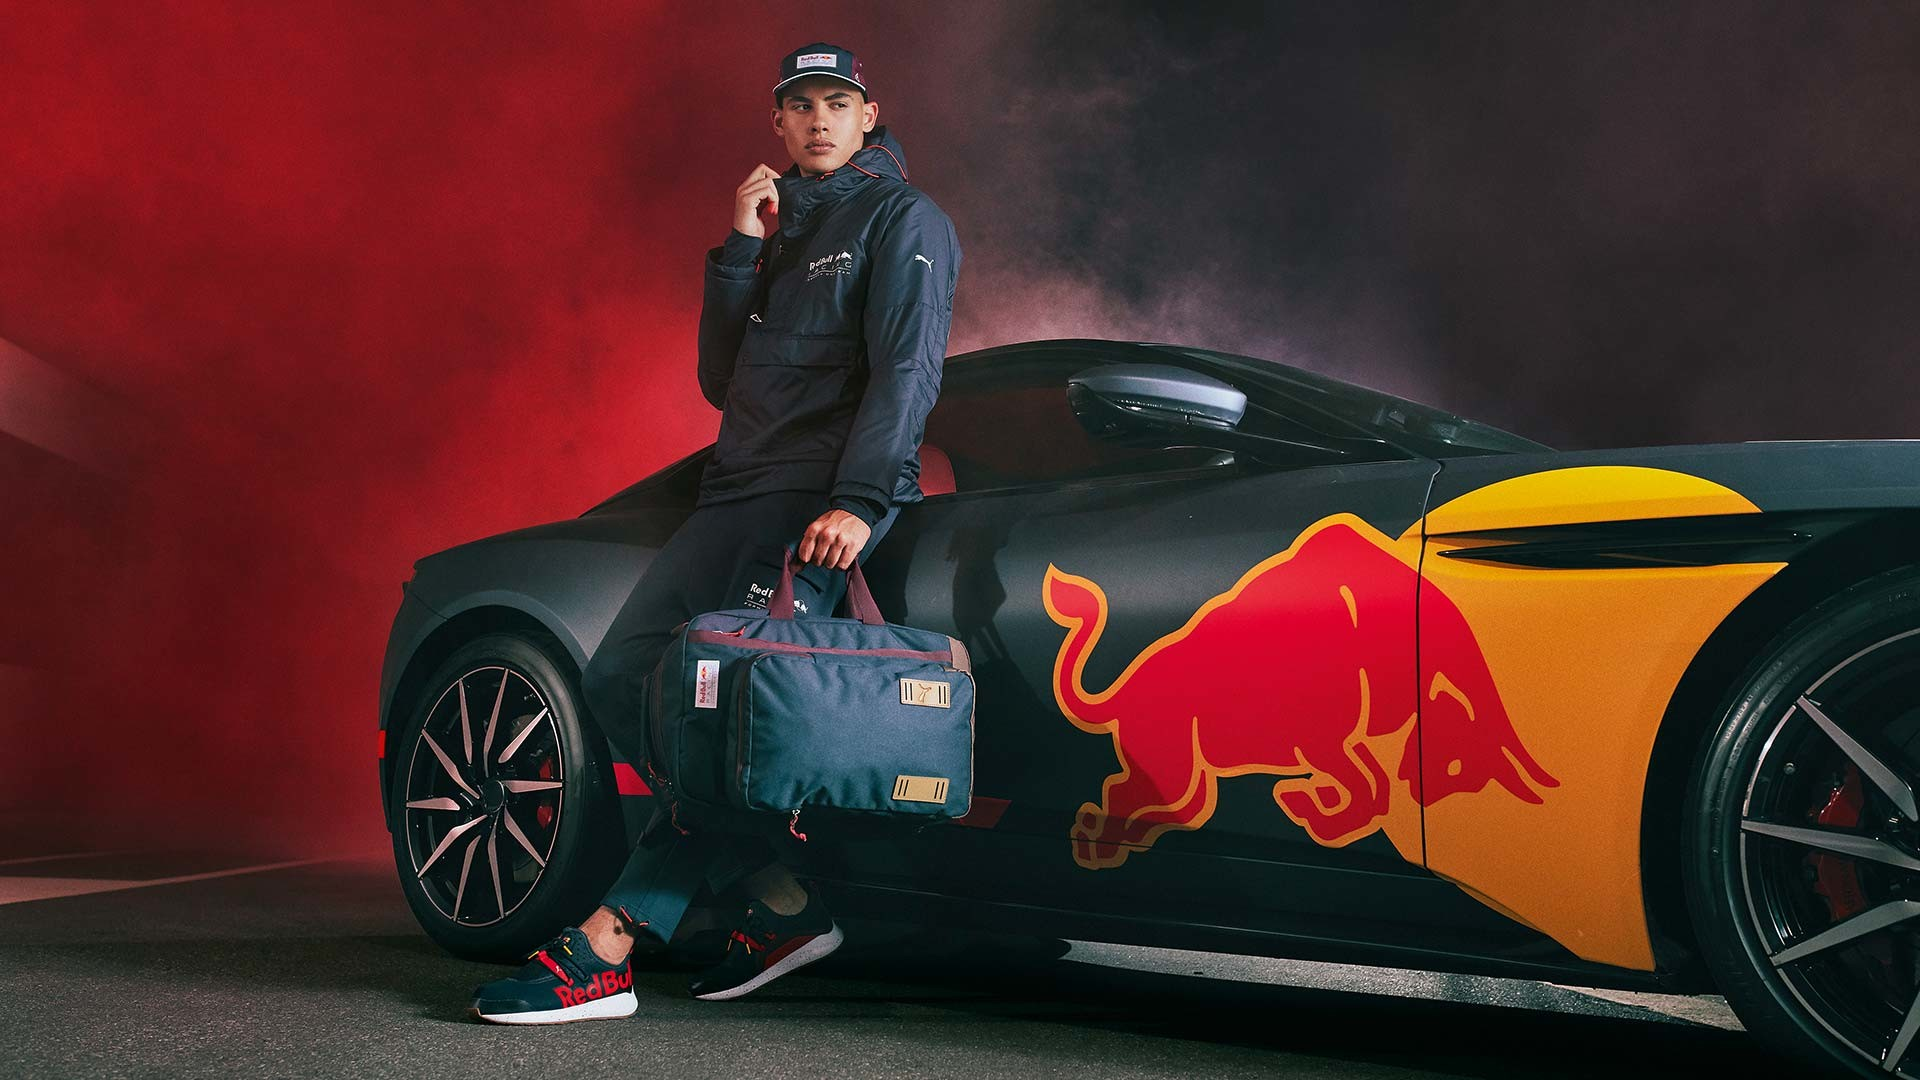 PUMA model in front of Red Bull Racing branded car